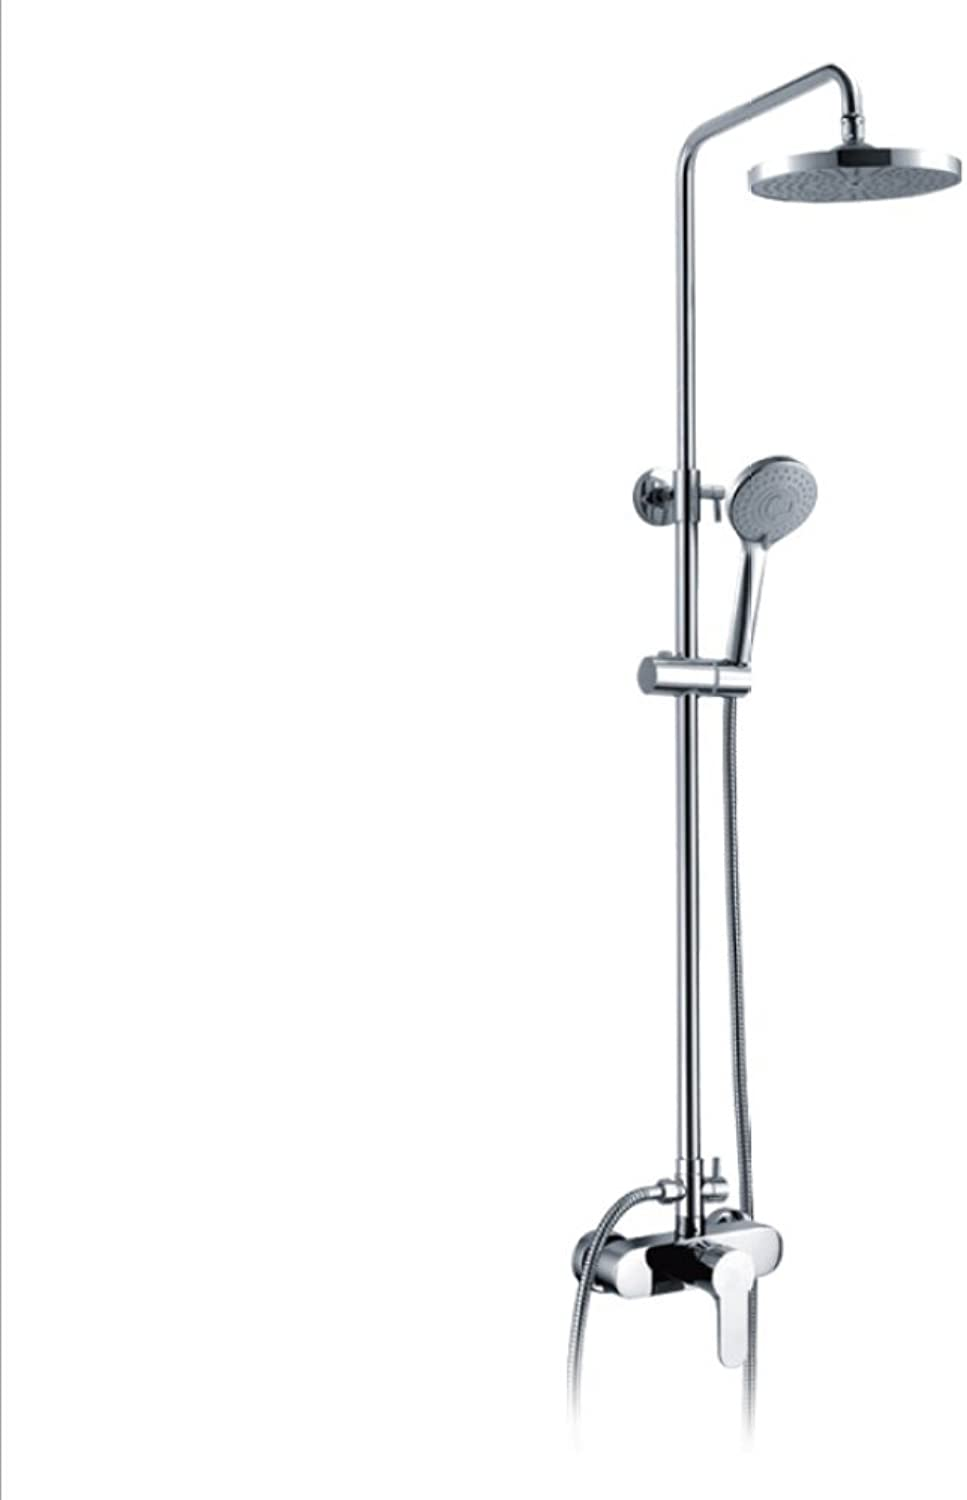 HH shower set European shower set lift shower hot and cold shower wall mounted shower hand shower bathroom shower hot and cold water mixing valve